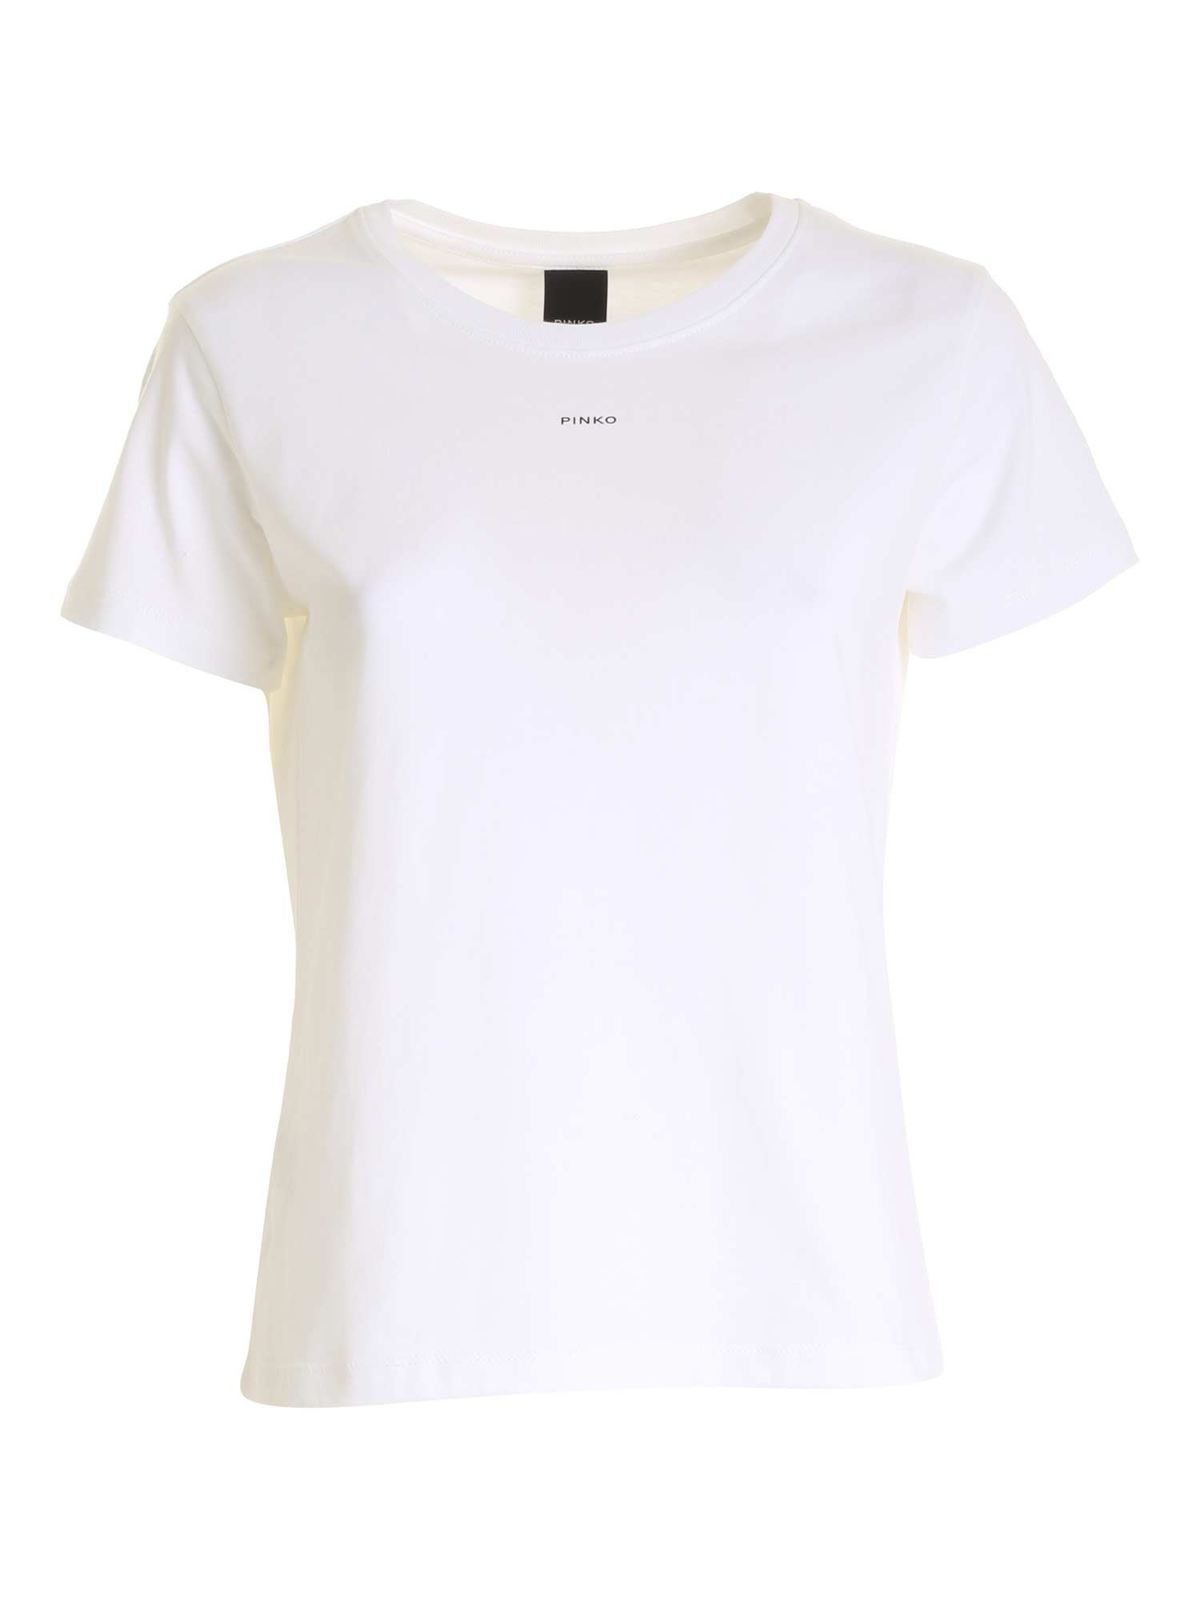 PINKO BASIC T-SHIRT IN WHITE